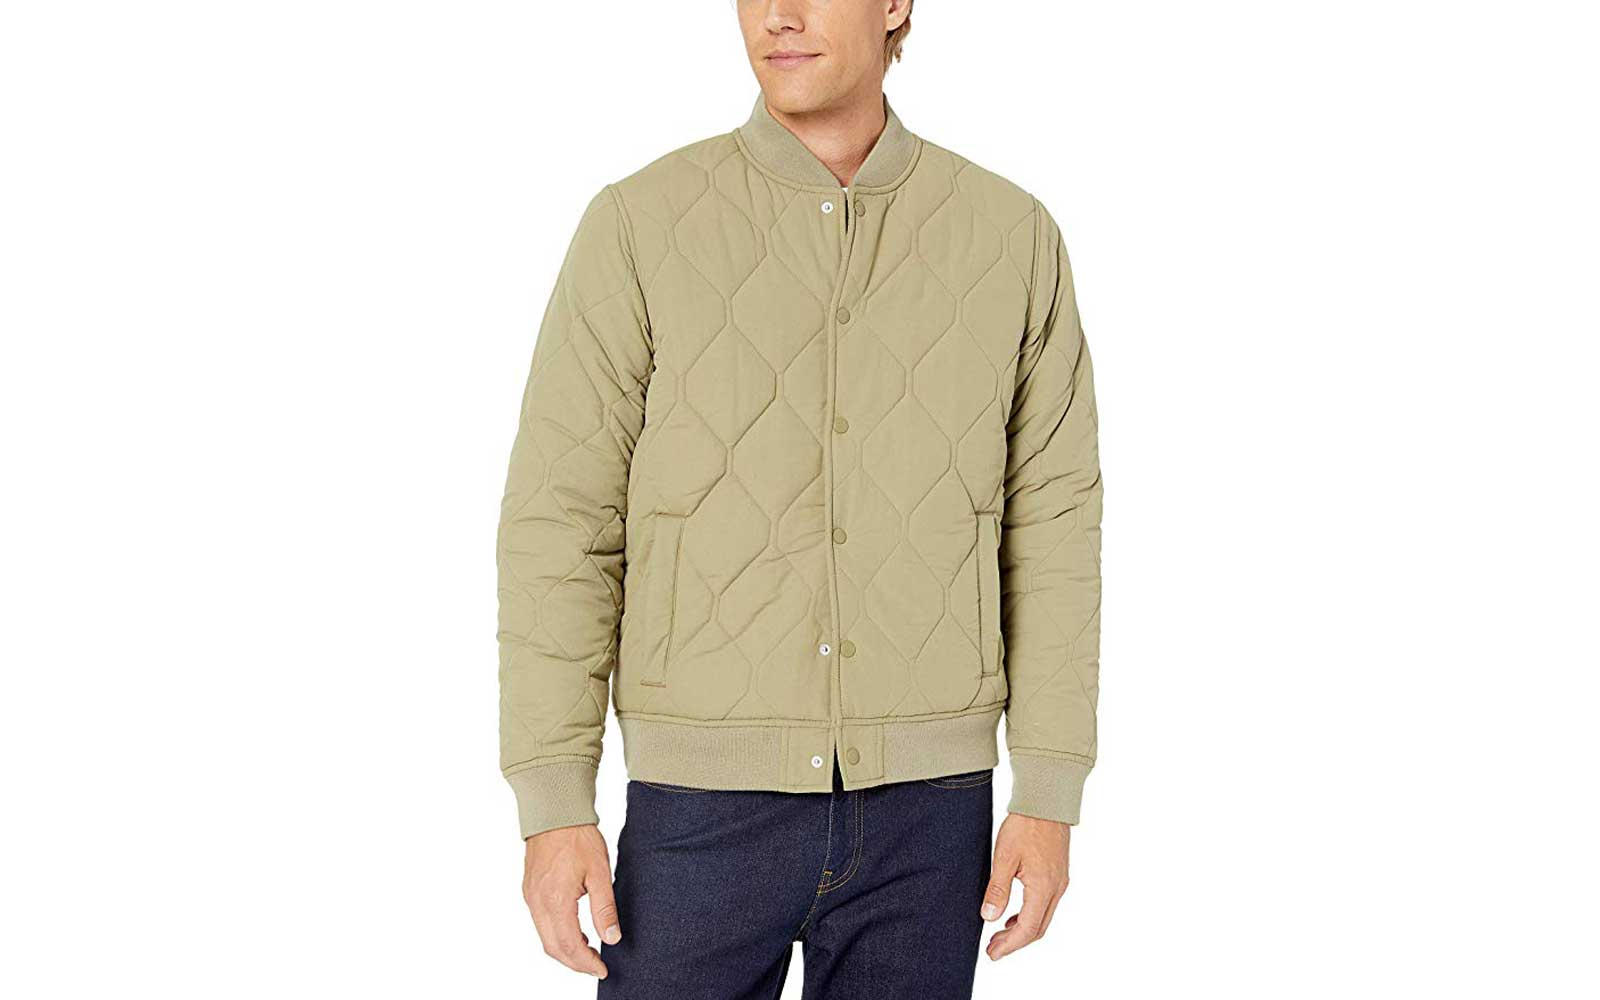 Men's Green Bomber Jacket